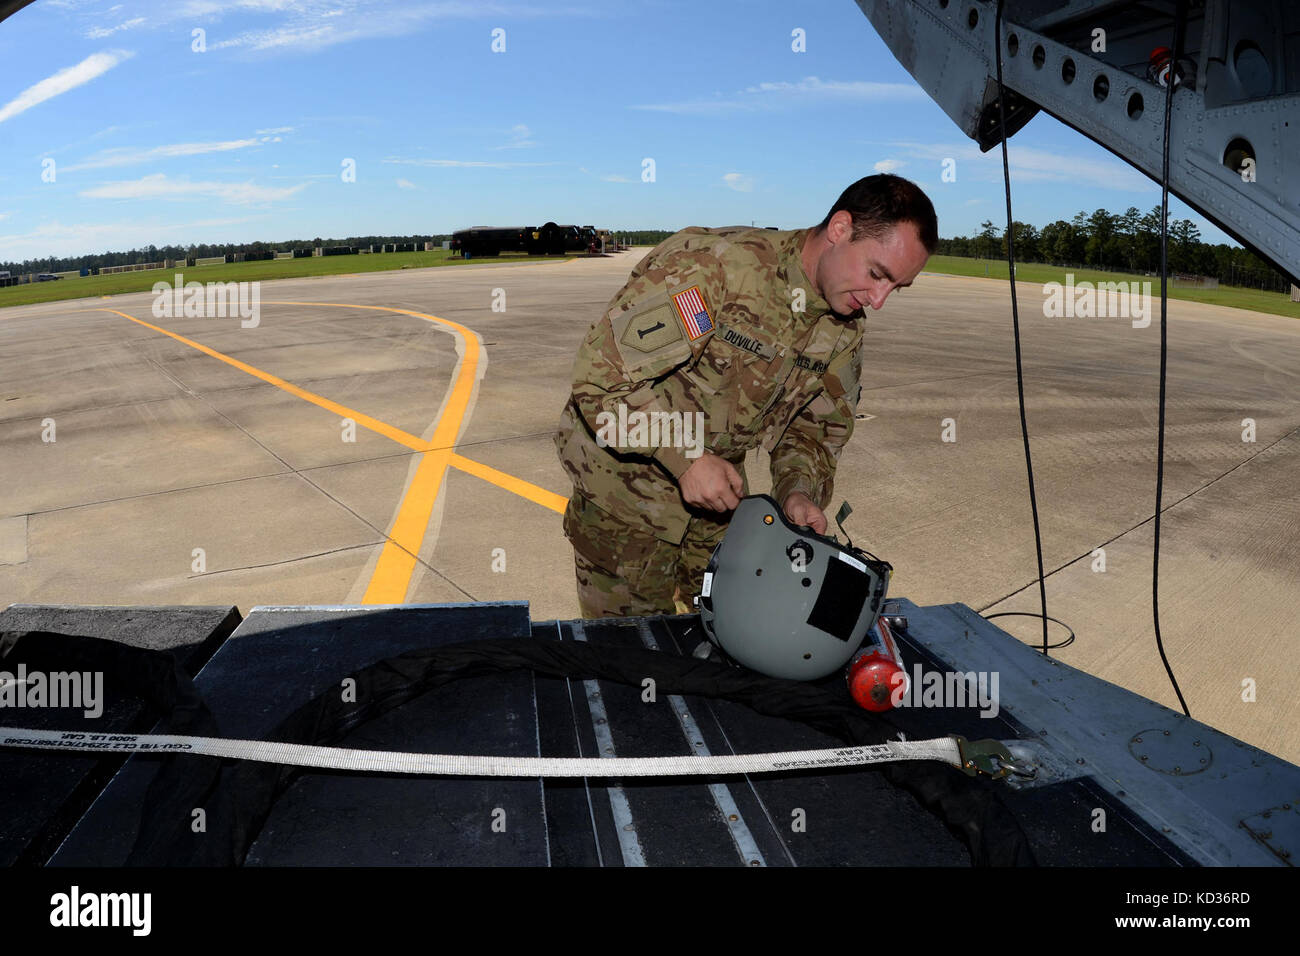 U.S. Army Spc. Ira Duville, a maintainer and crew chief with the South Carolina Army National Guard's 2-238th Aviation Stock Photo